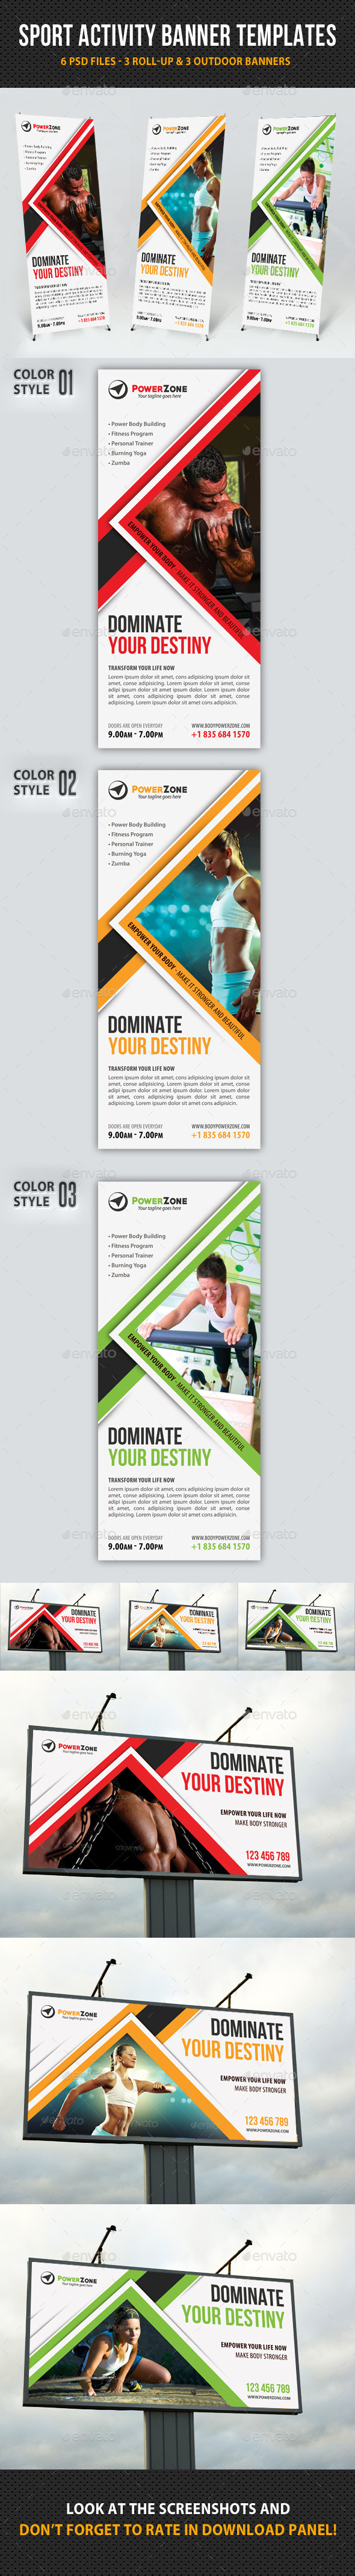 Sport Activity Banner Templates - Signage Print Templates